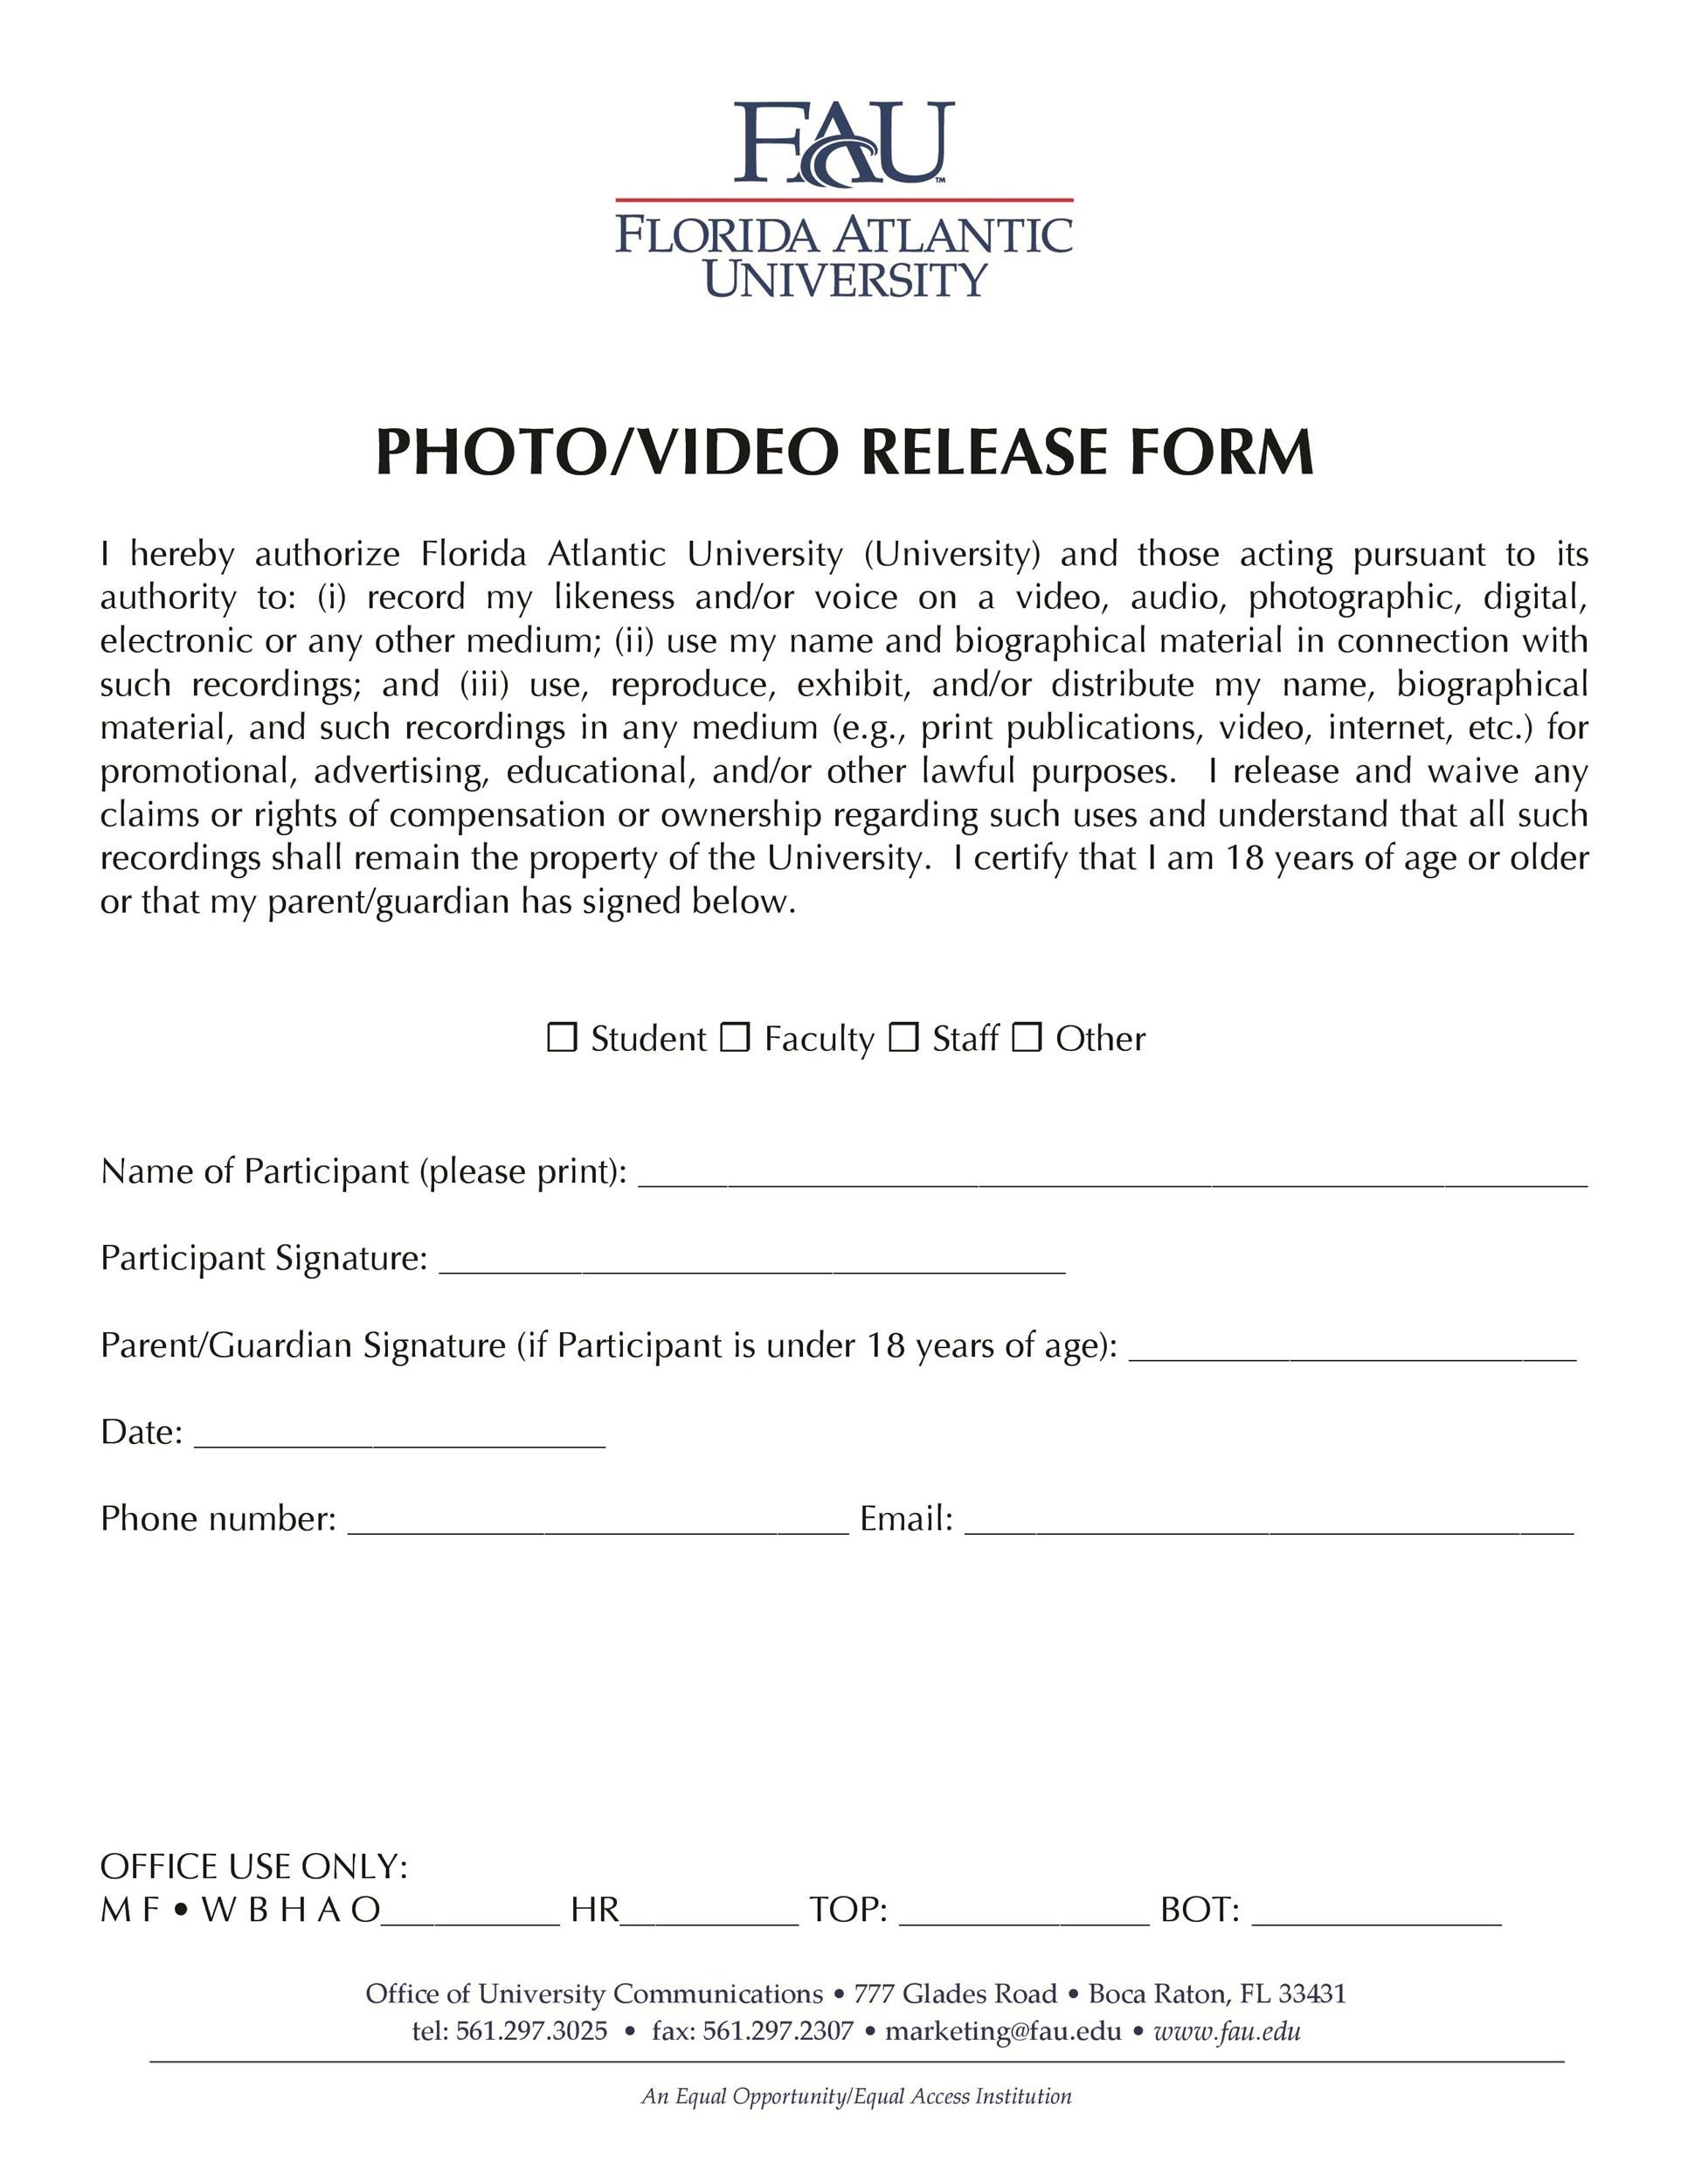 53 free photo release form templates word pdf template lab printable photo release form 16 alramifo Image collections